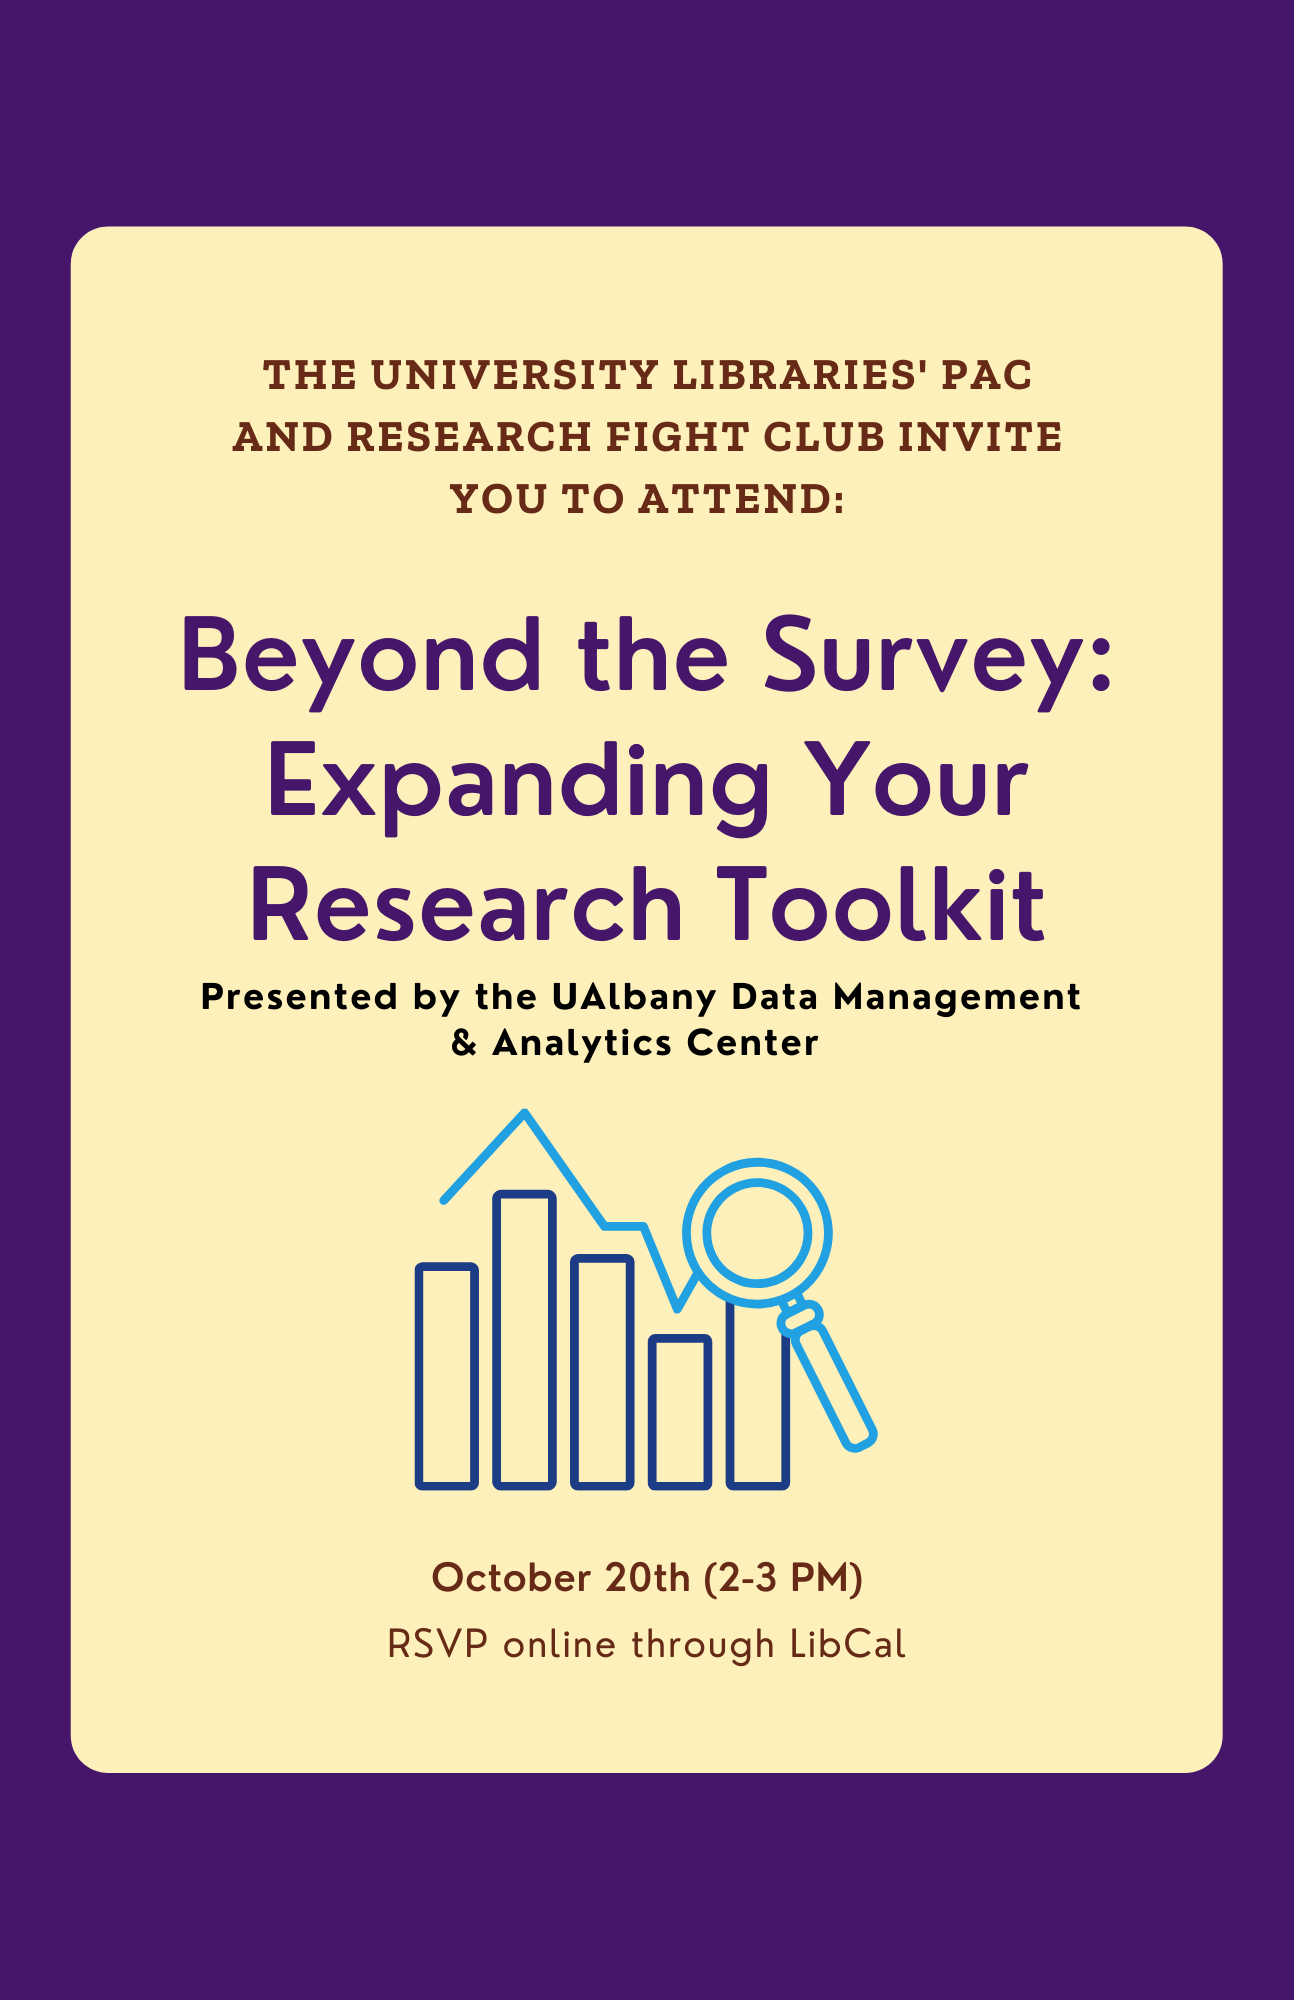 Beyond the Survey: Expanding Your Research Toolkit